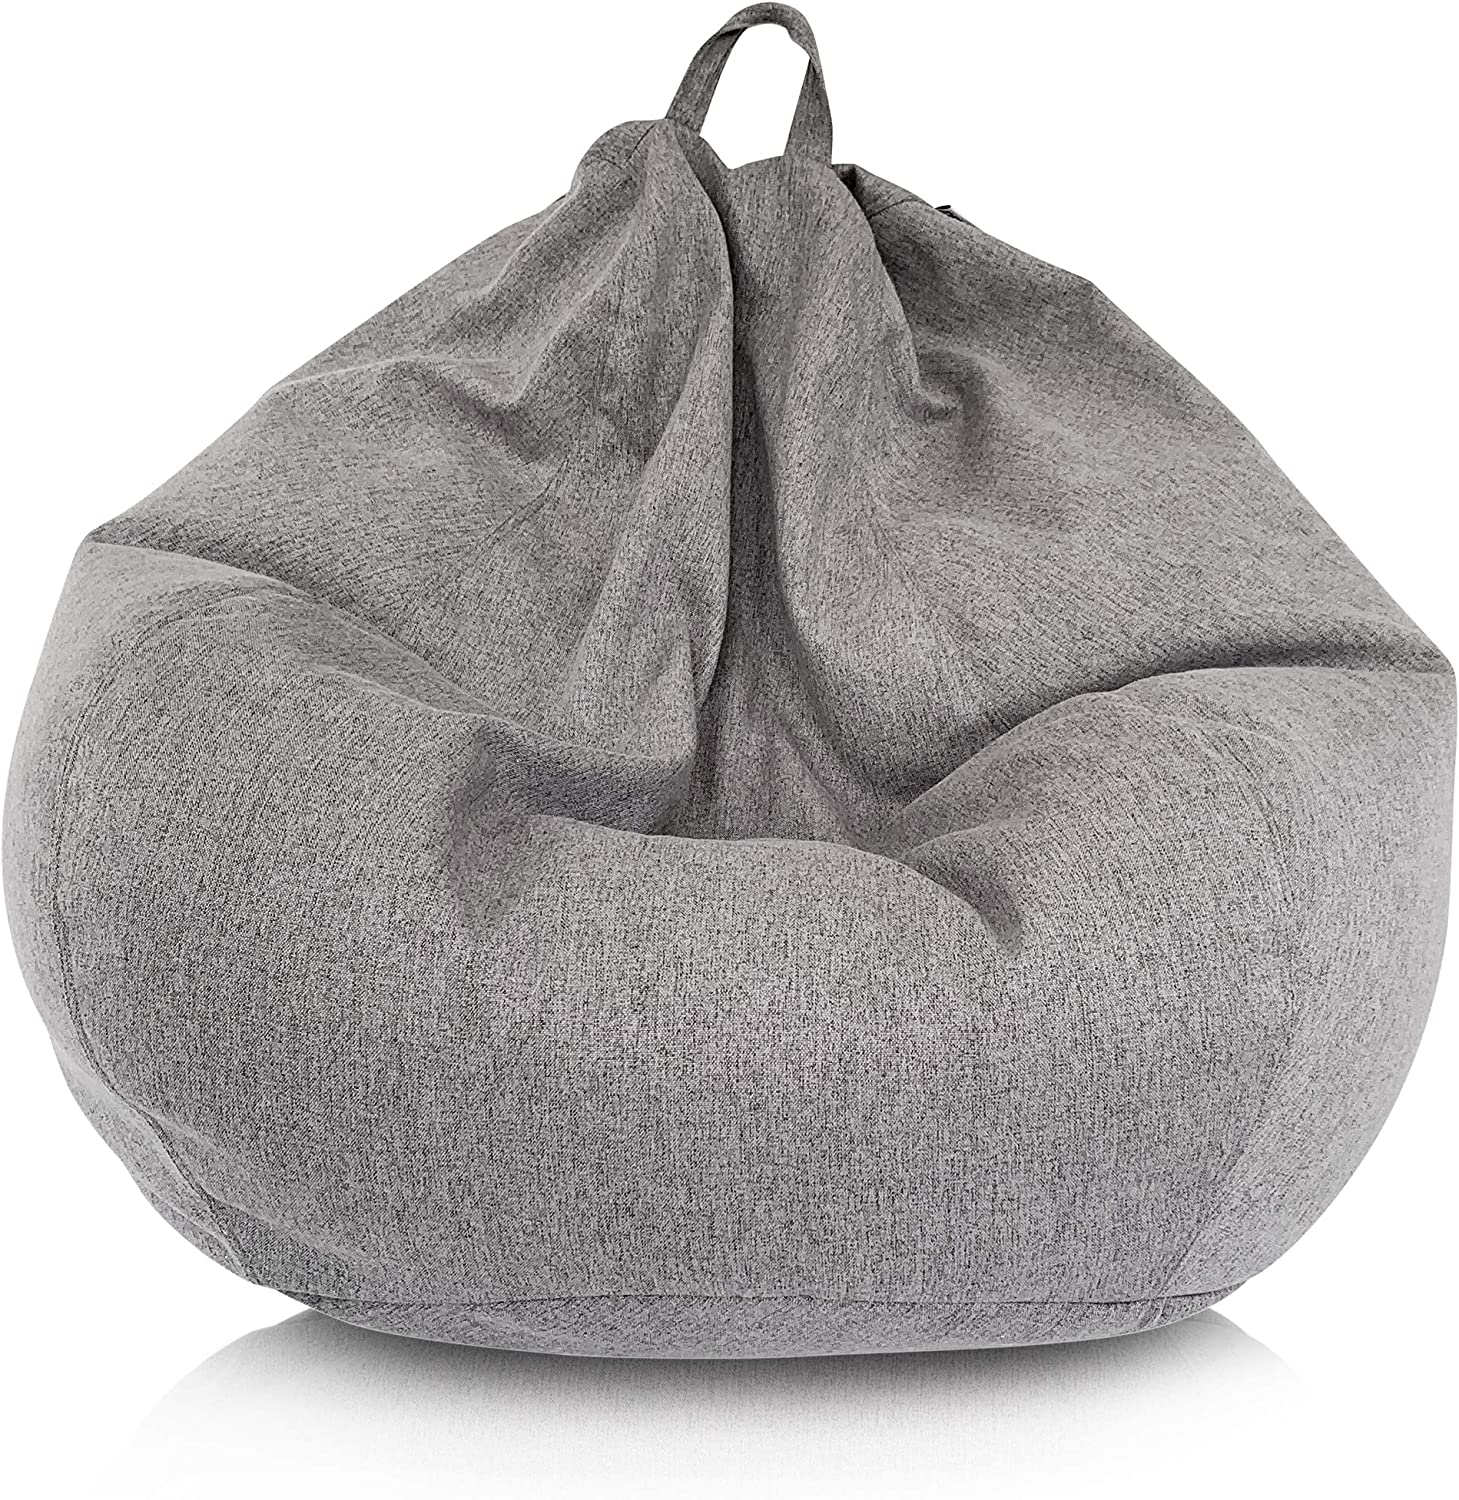 Delmach Bean Bag Chair Cover (No Filler) | Bird's Nest Shape | Adult Size | Thick Faux Linen | Stuffed Animal Storage for Kids Or Memory Foam| Double Stitched | Durable Zipper | Soft Premium